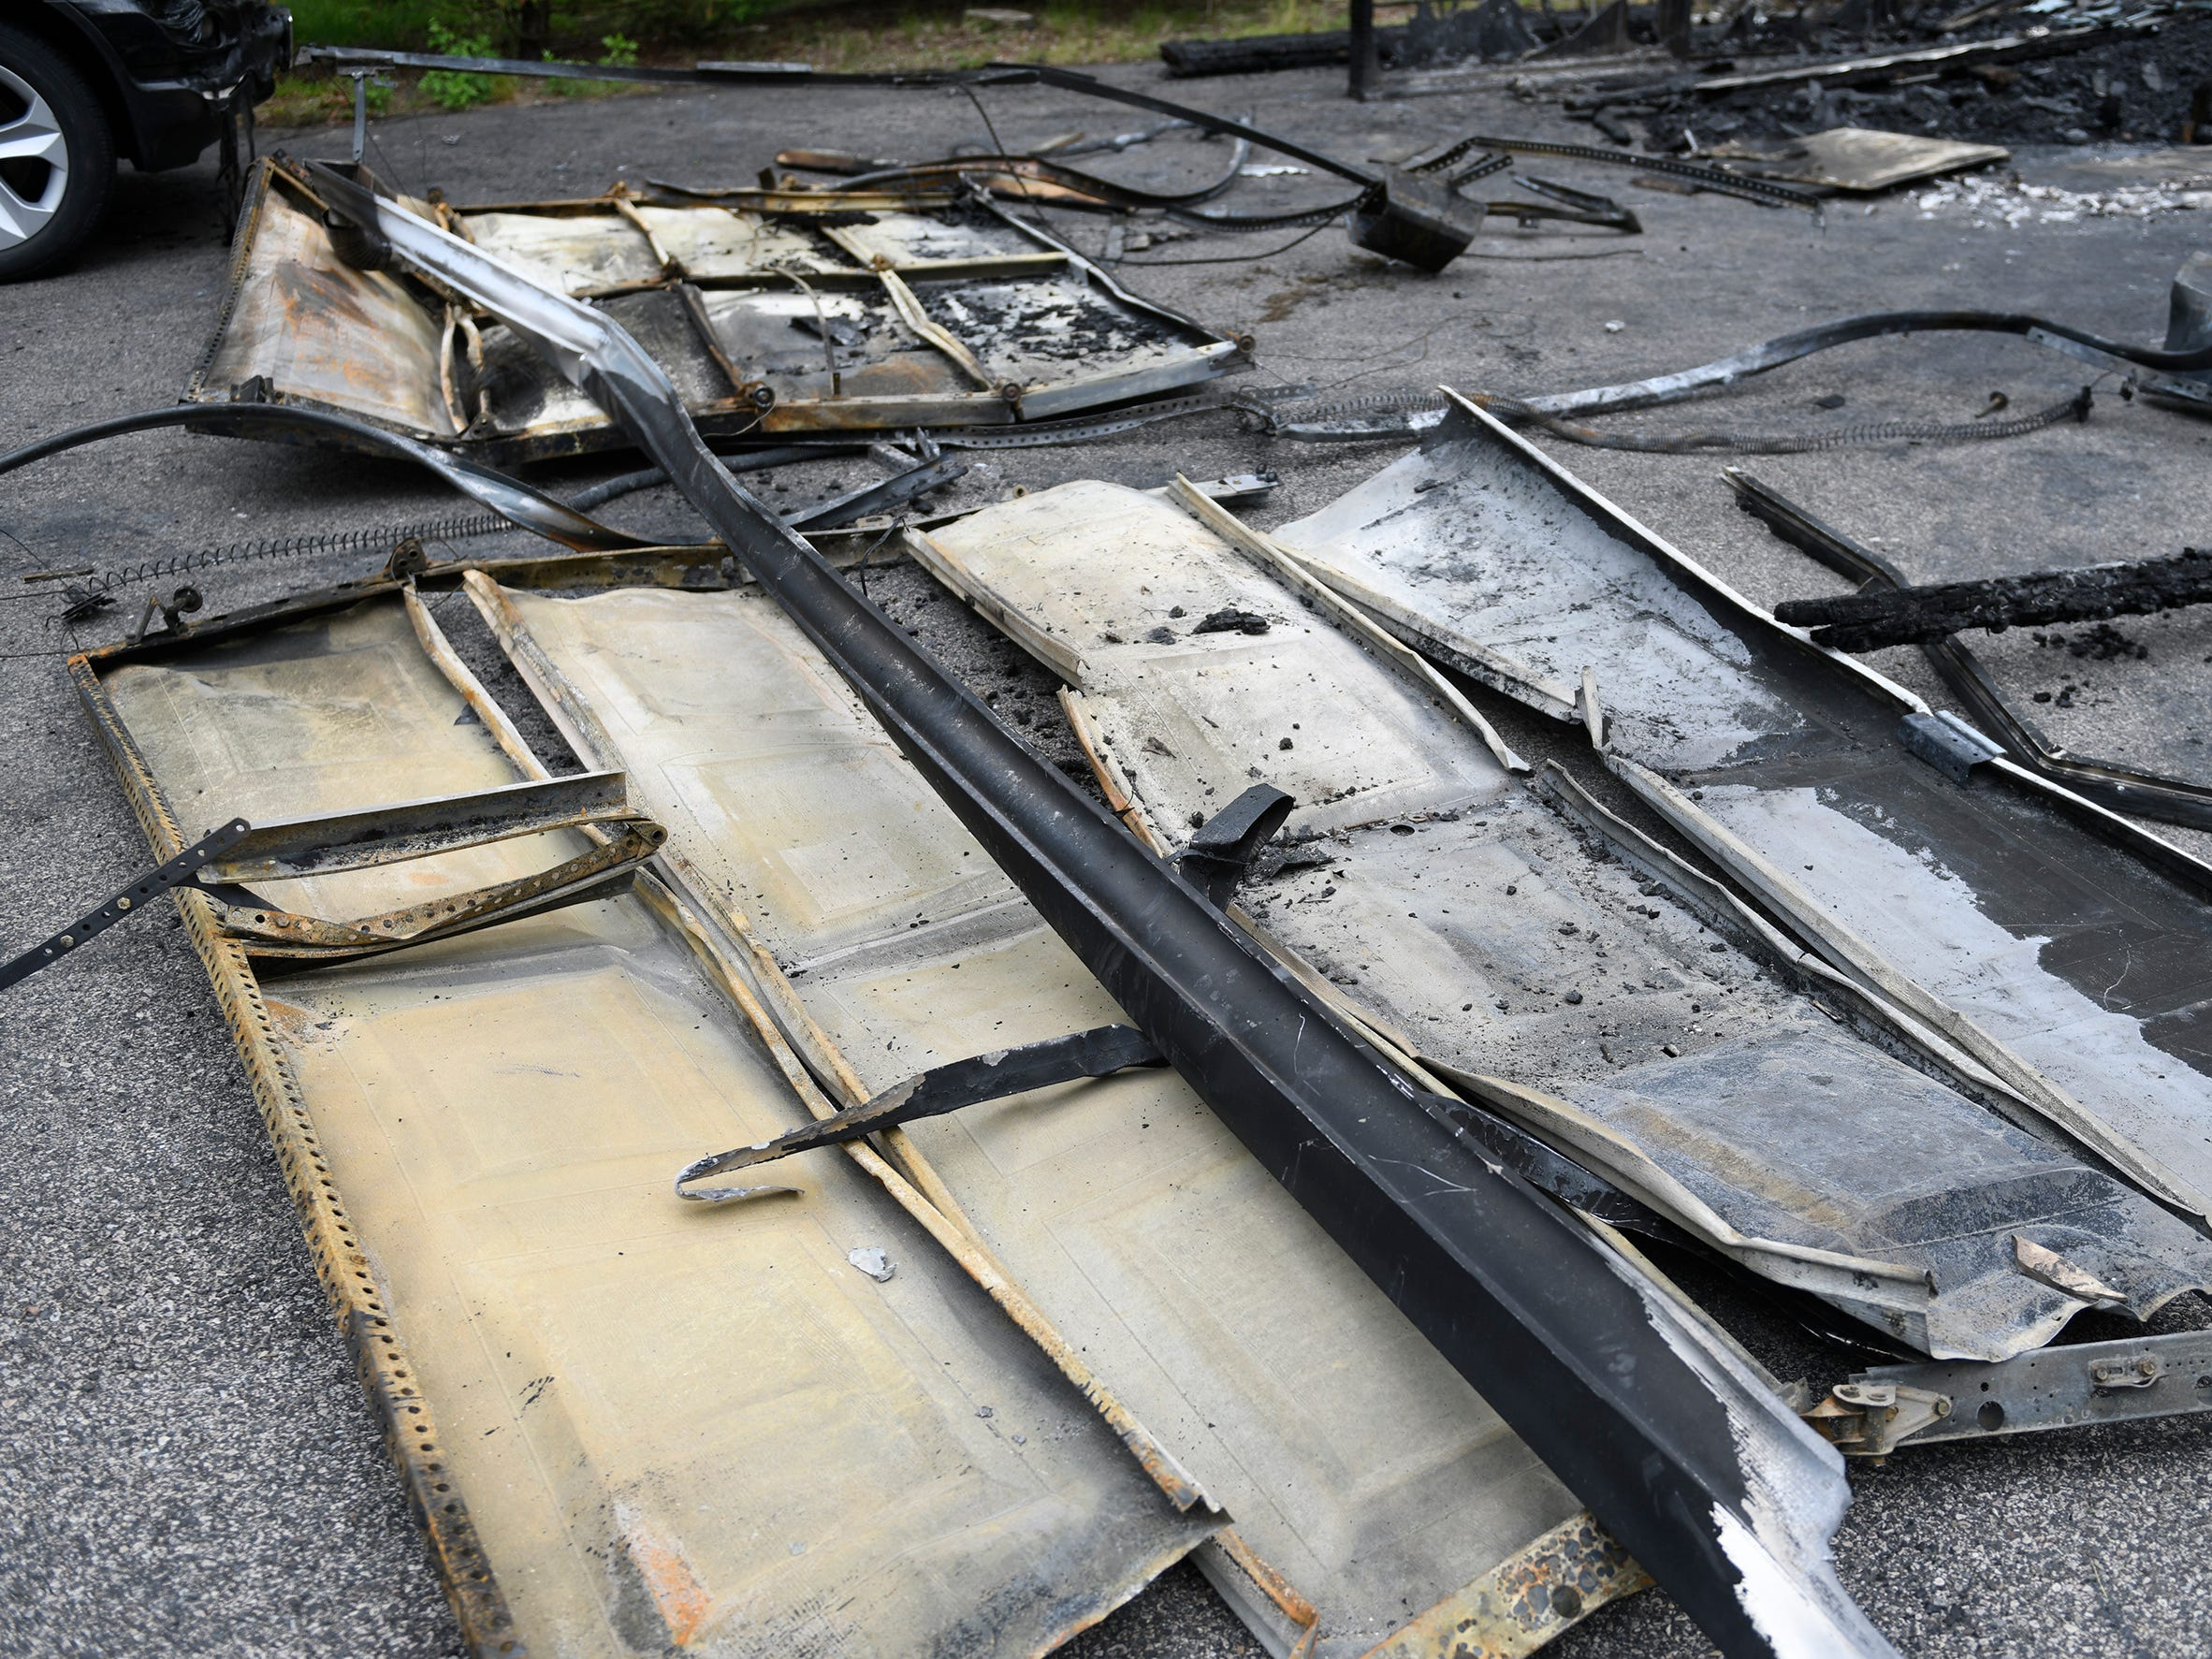 Both garage doors are pictured here warped from Monday's house fire on the 1700 block of West Oak Road in Vineland.